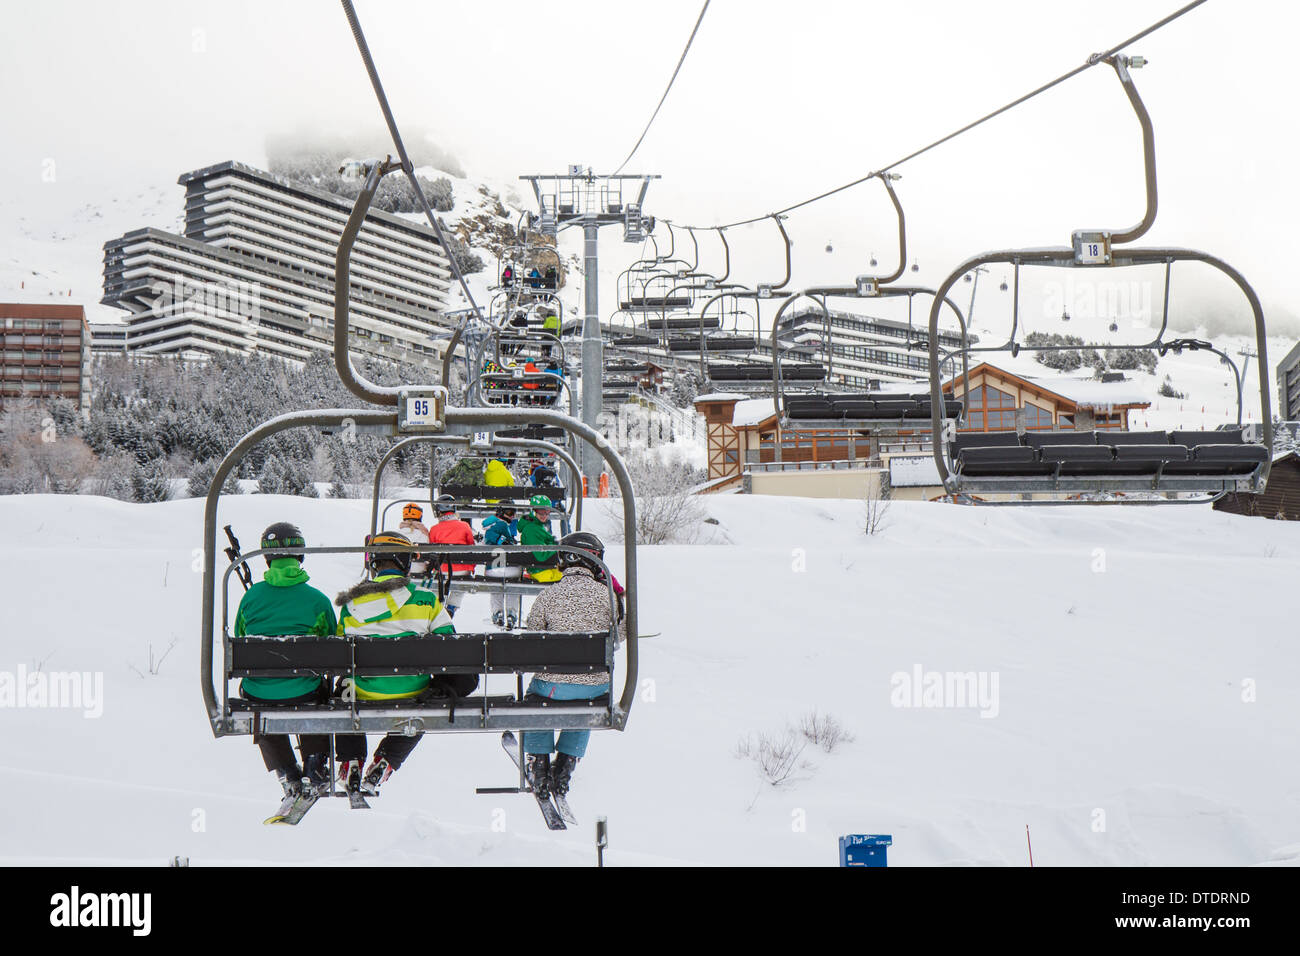 Skiers in a chairlift in Les Menuires, Trois Vallees, France Stock Photo